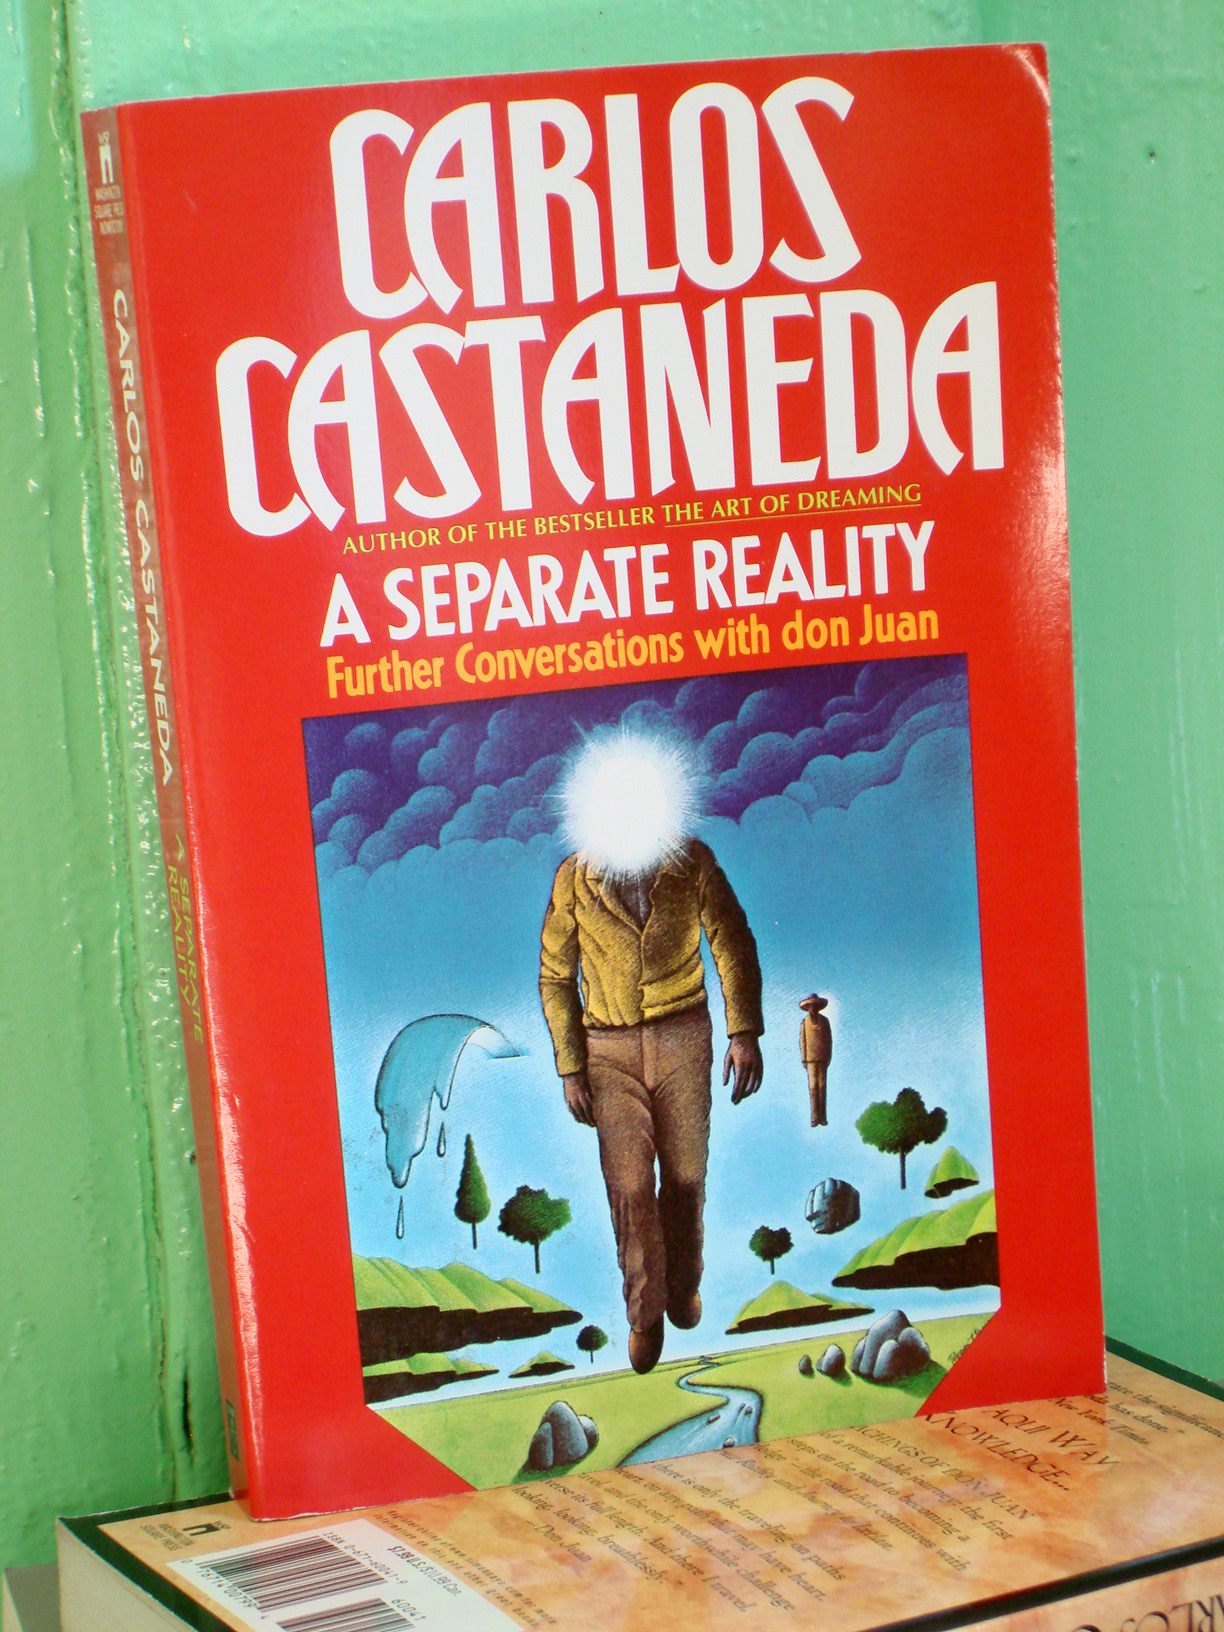 A separate reality (***OUT of STOCK***)